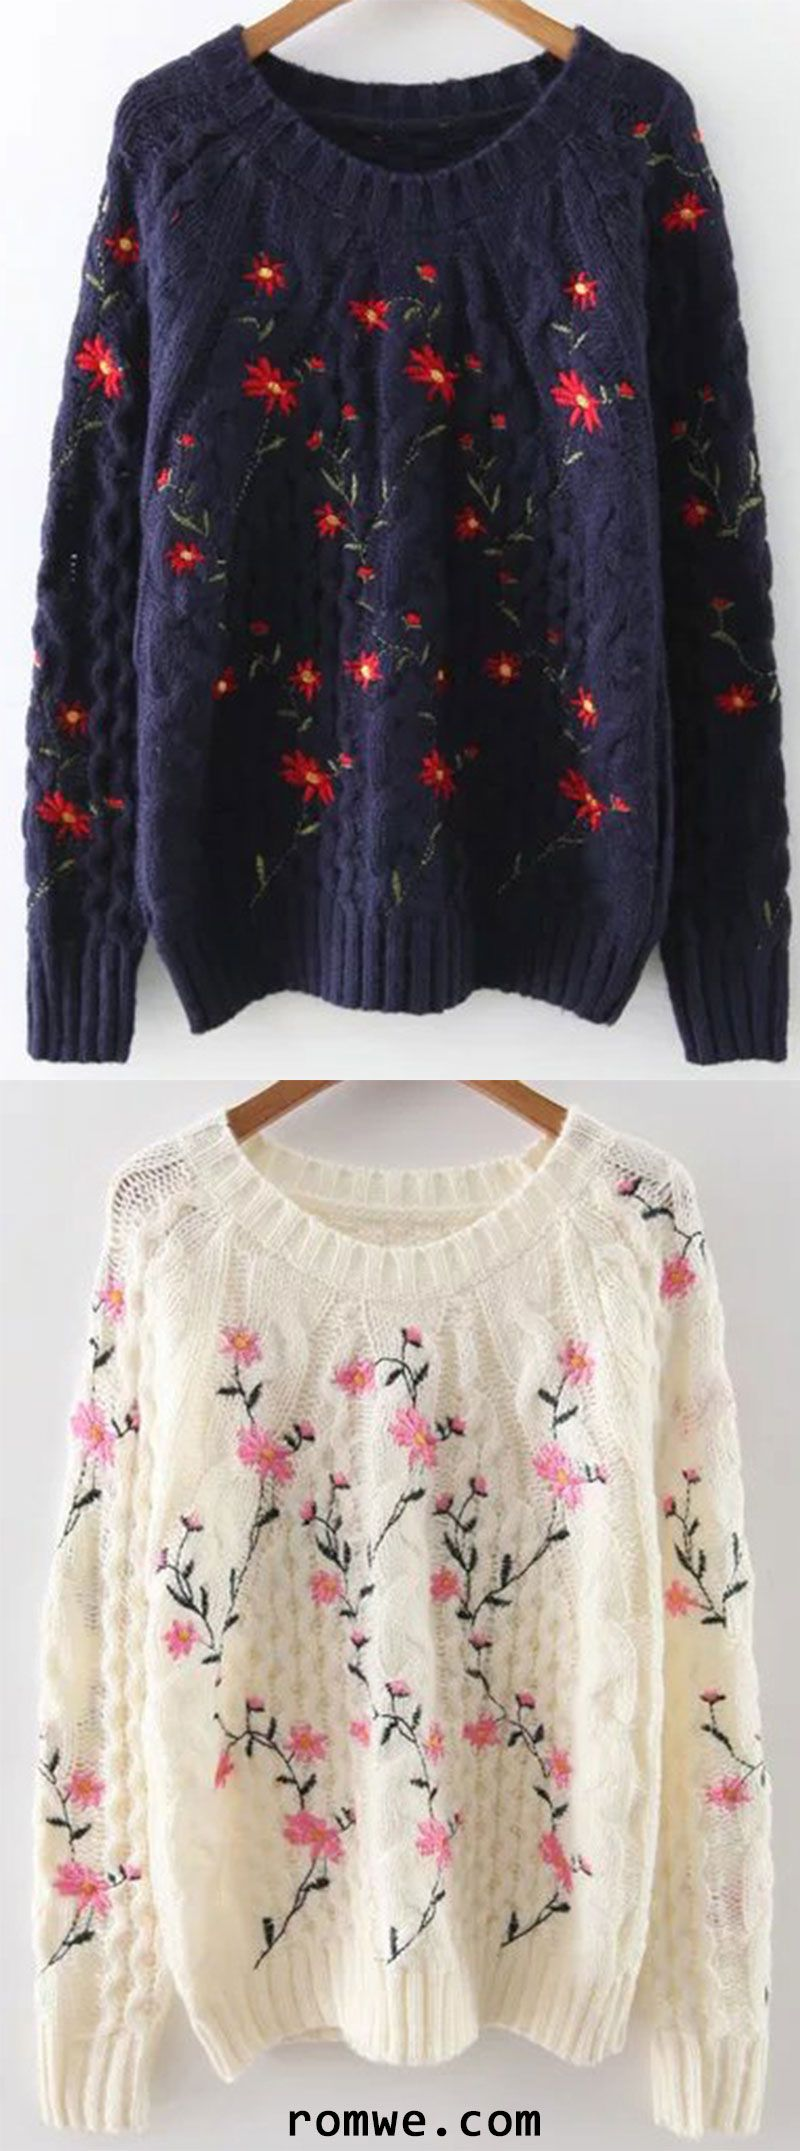 White & Navy Floral Embroidery Raglan Sleeve Sweater | Romwe Women ...